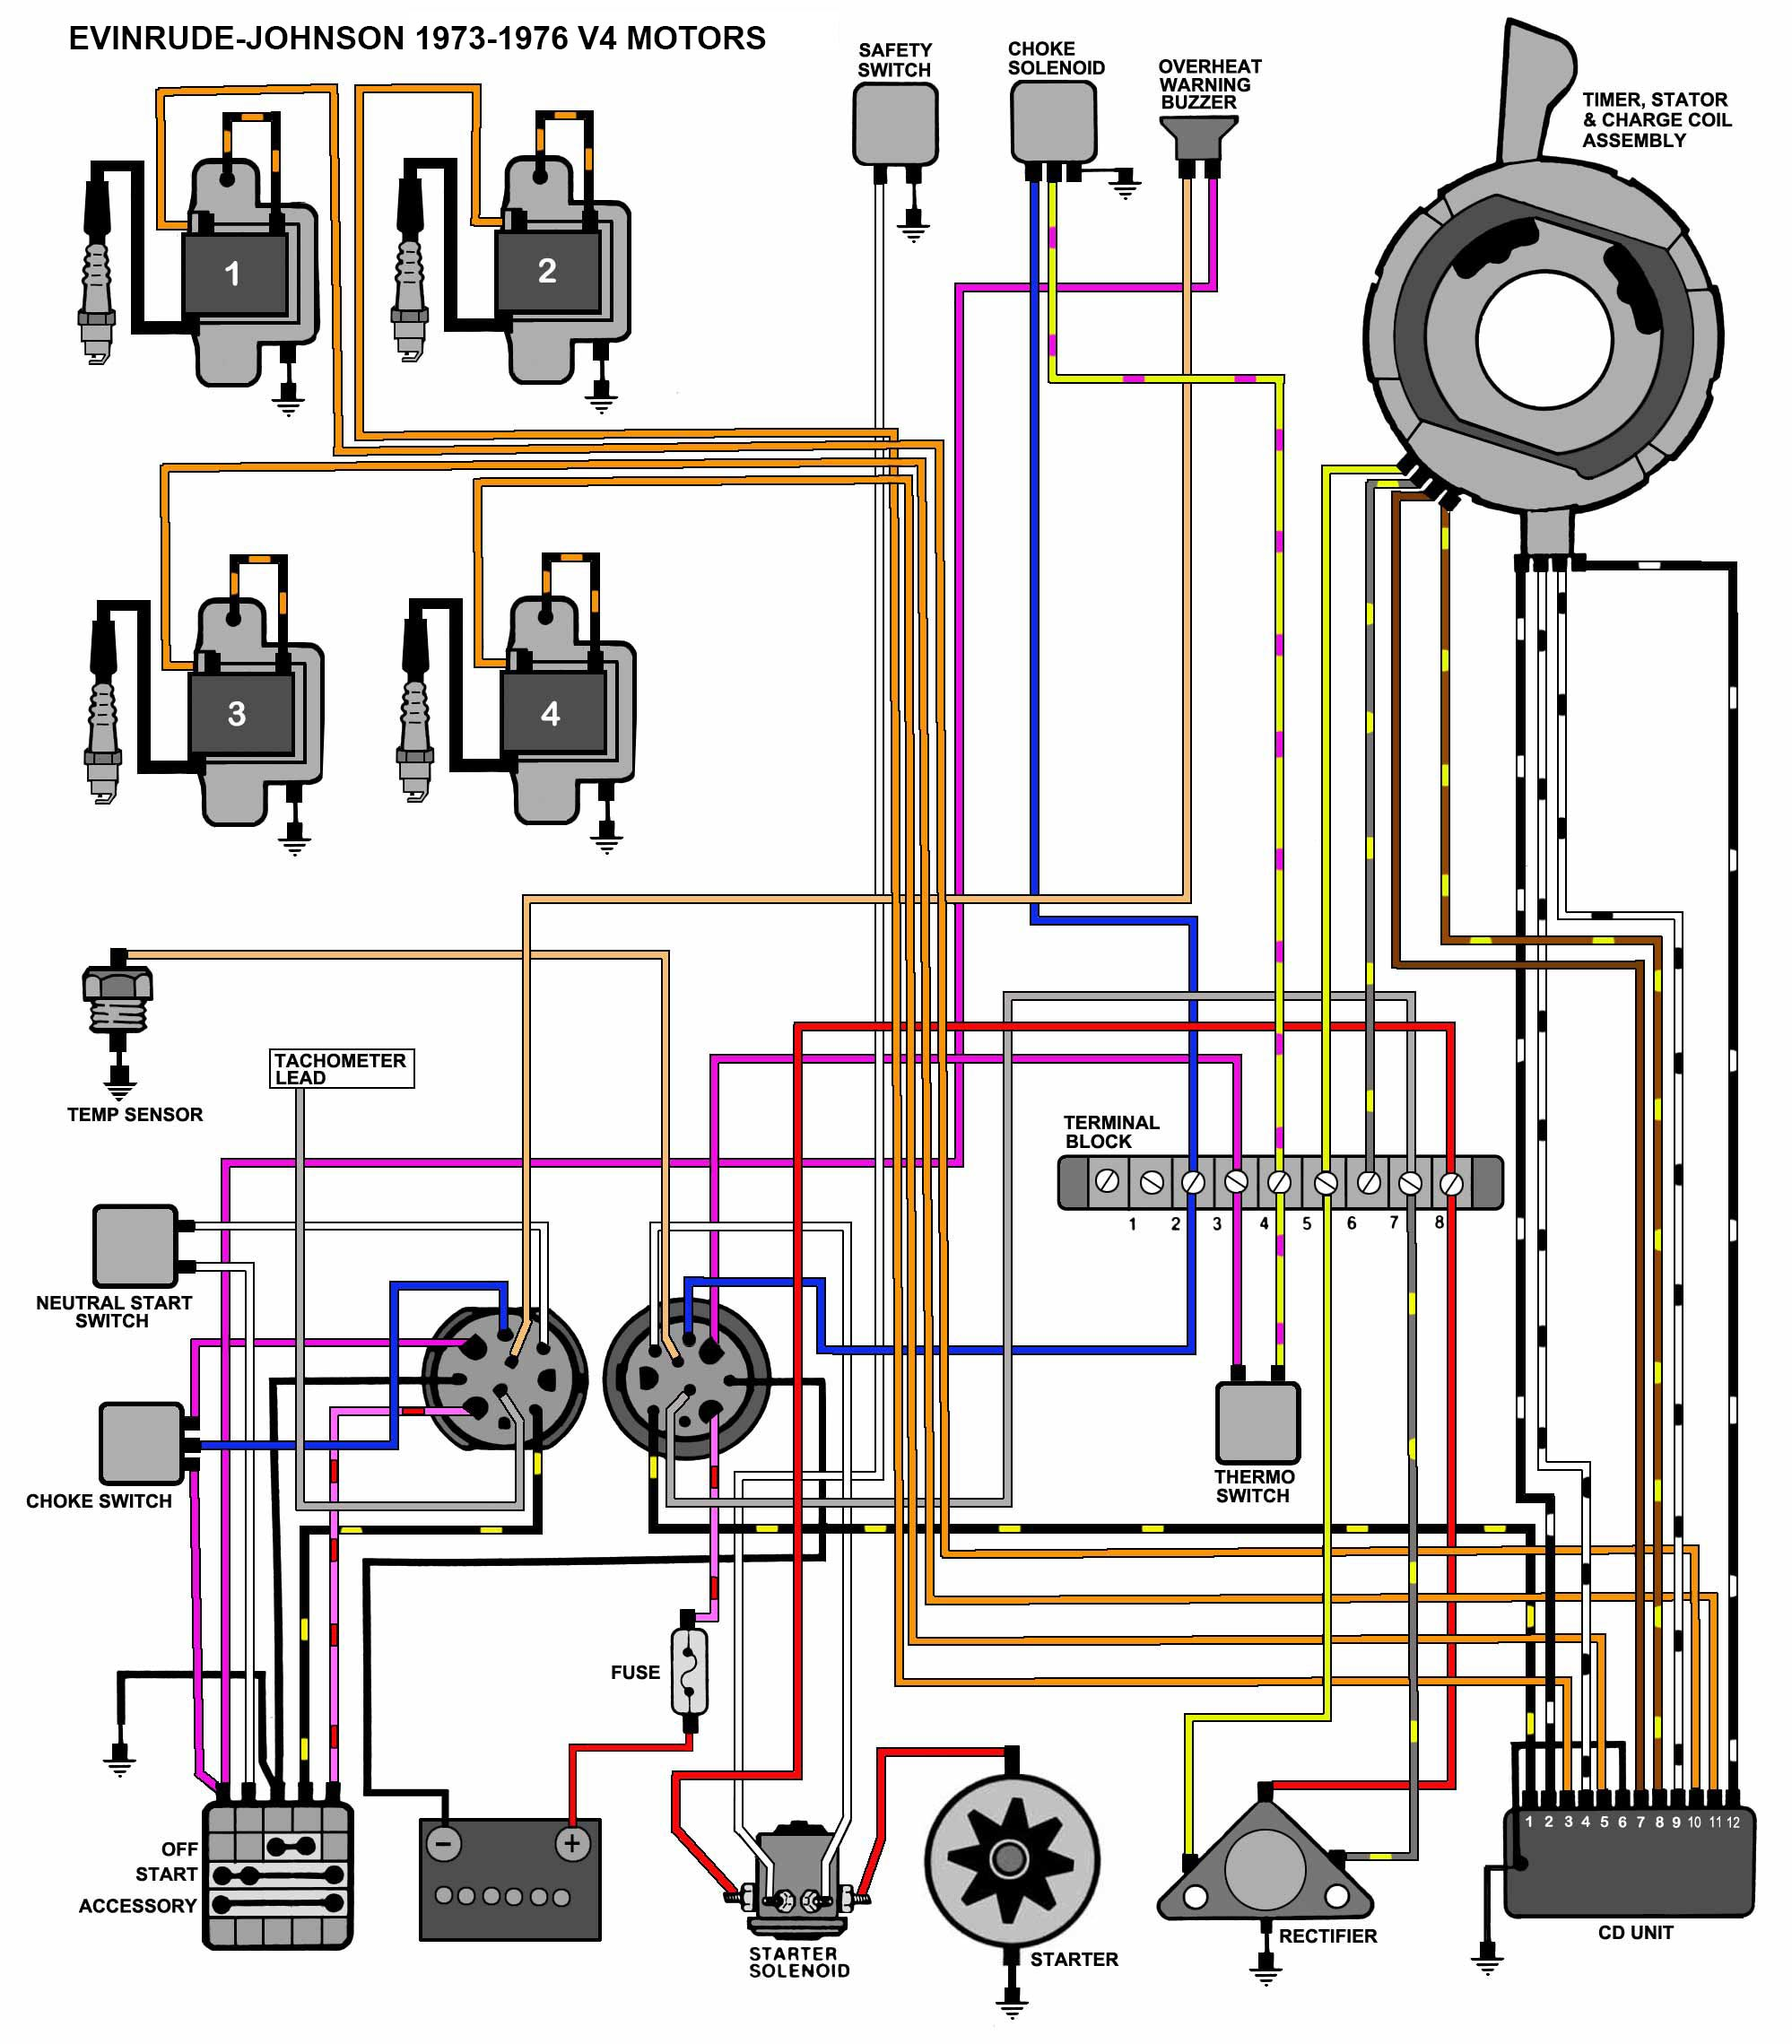 Evinrude Model 50273c 50 Hp Wiring Diagram | New Wiring ... on